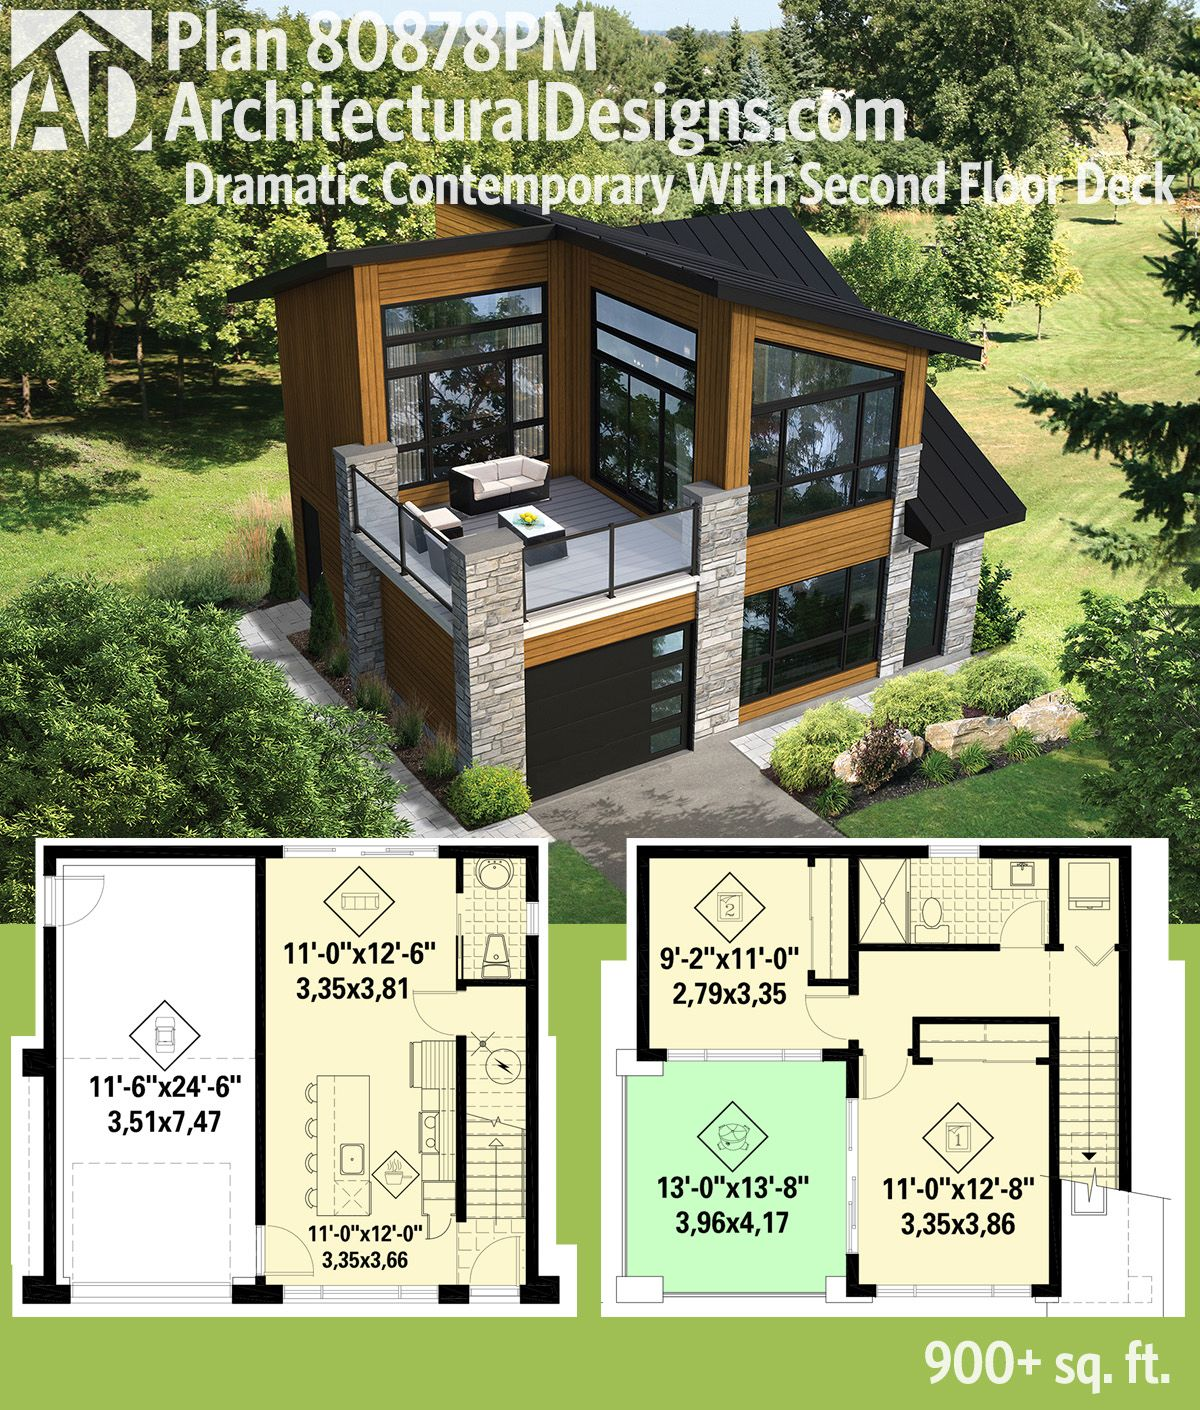 Plan 80878pm dramatic contemporary with second floor deck for Modern tiny house design